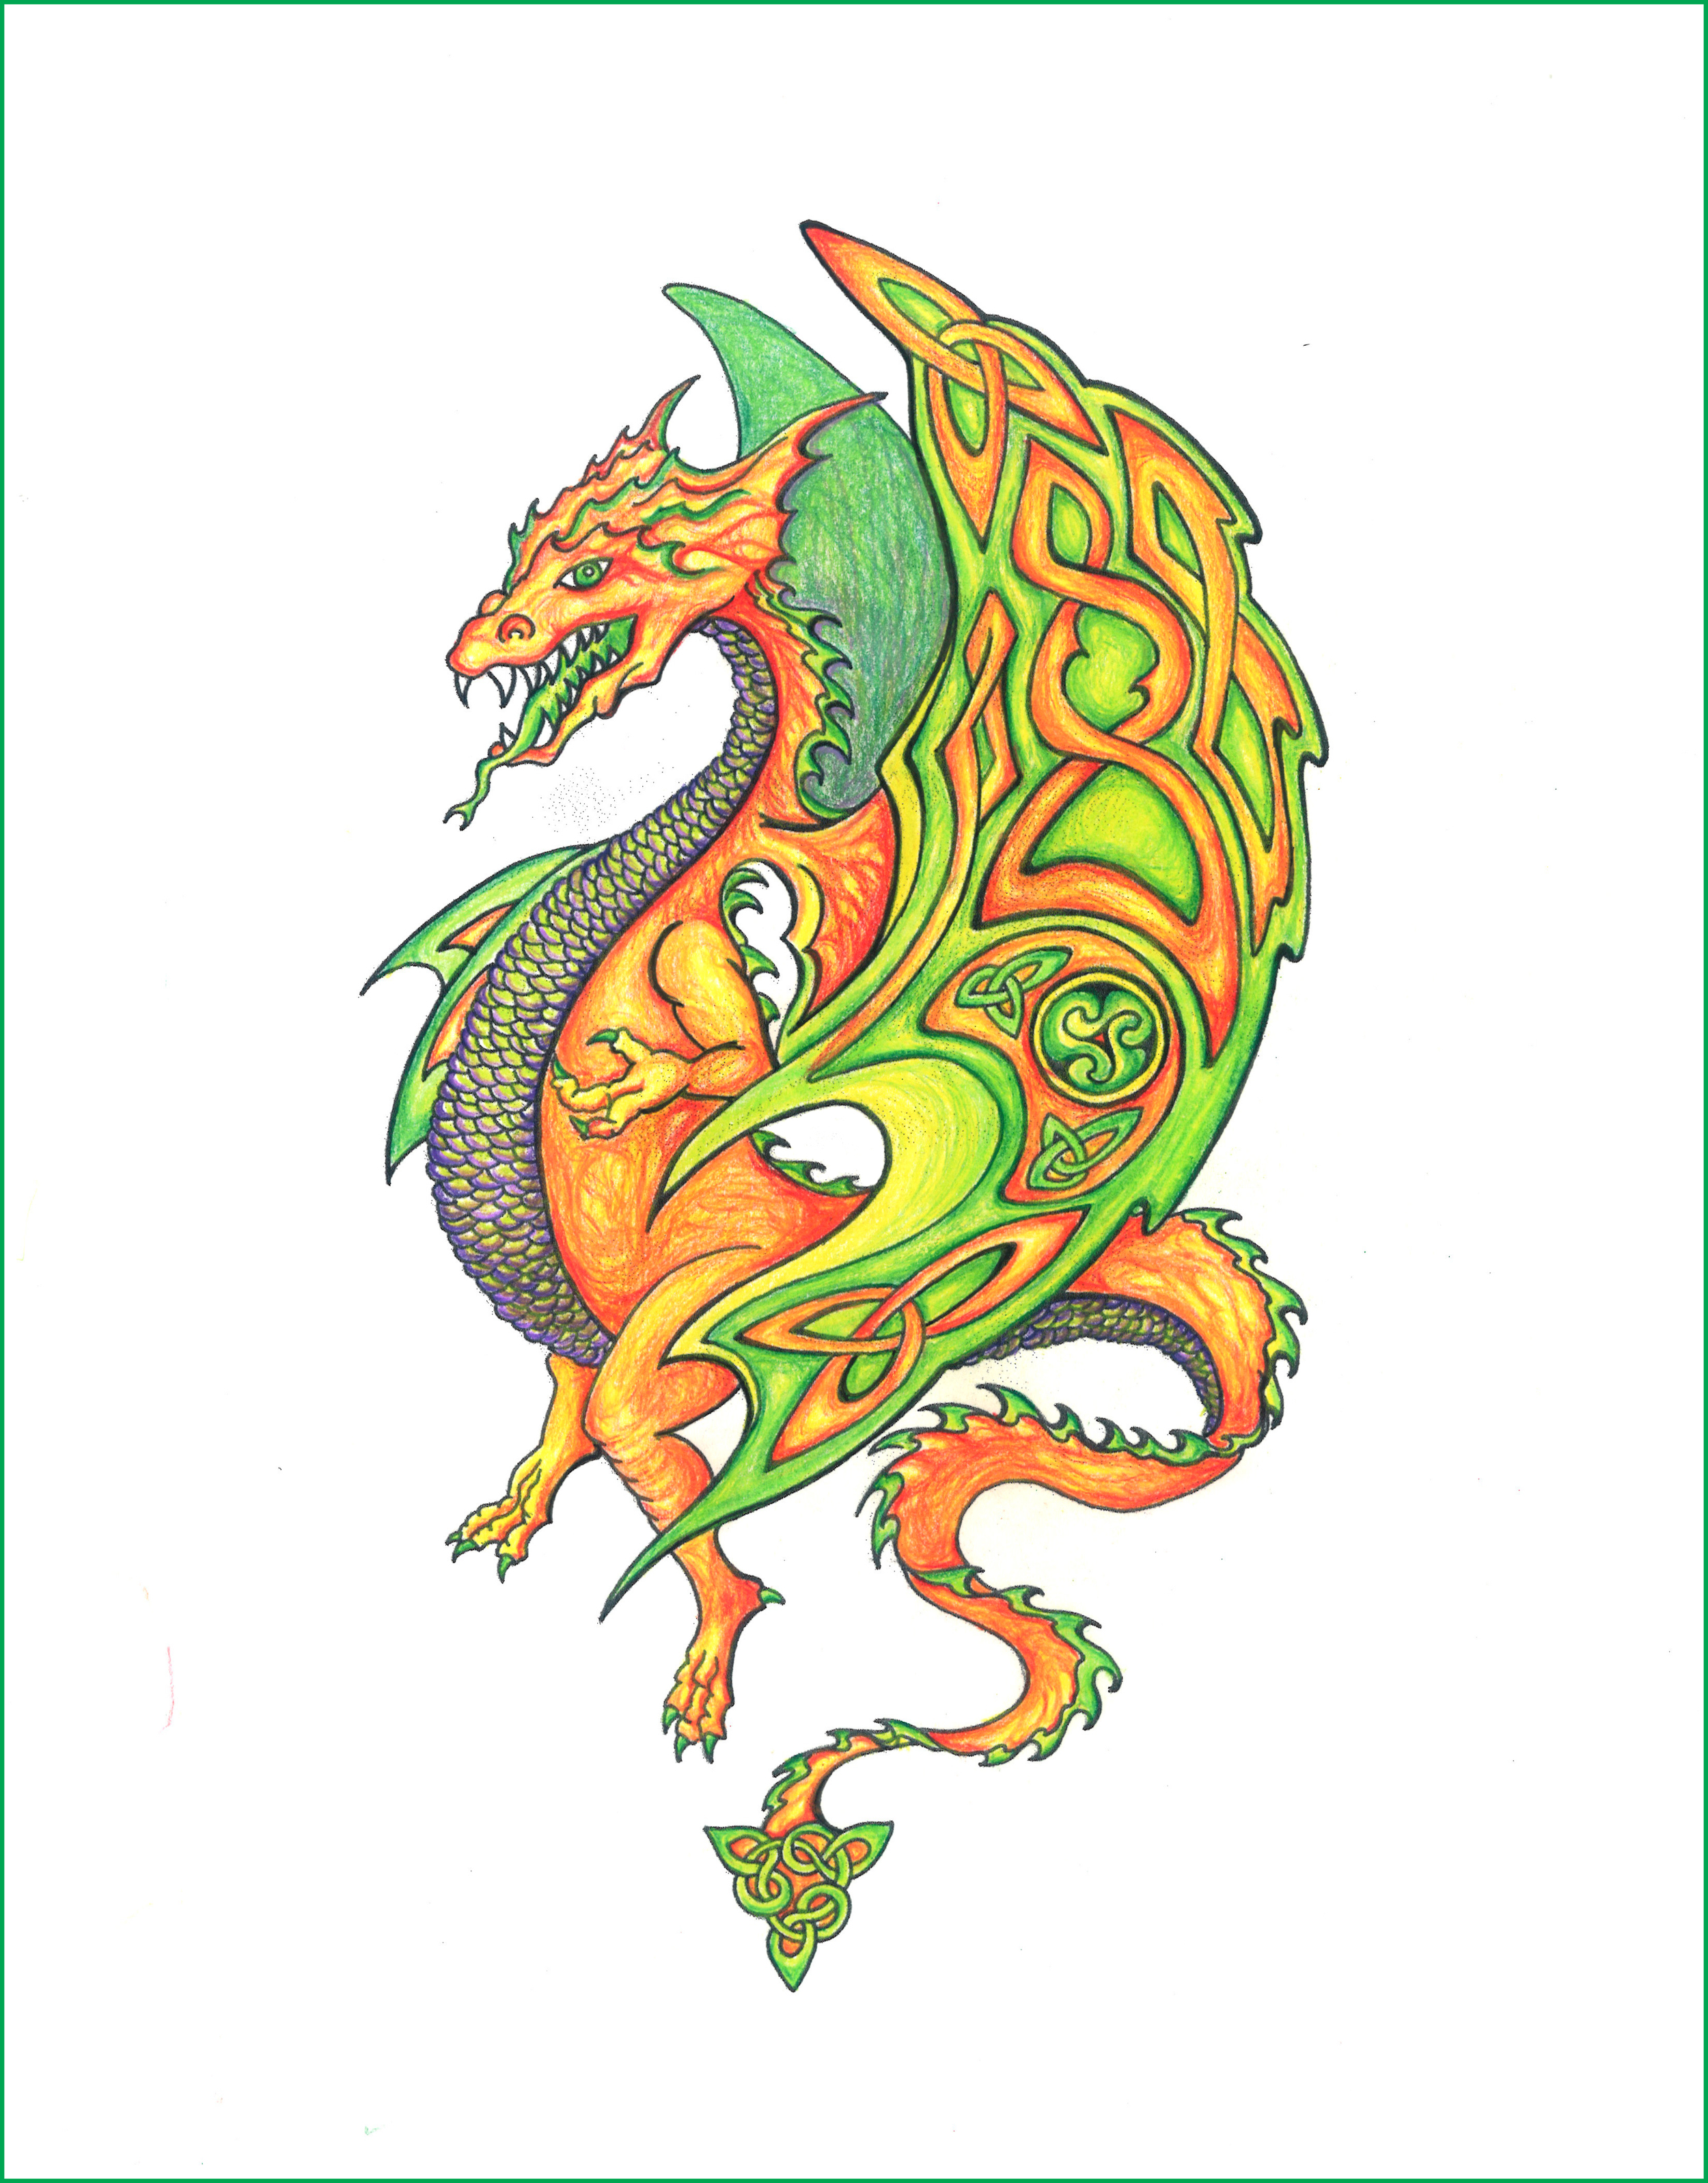 color_dragon_border.jpg